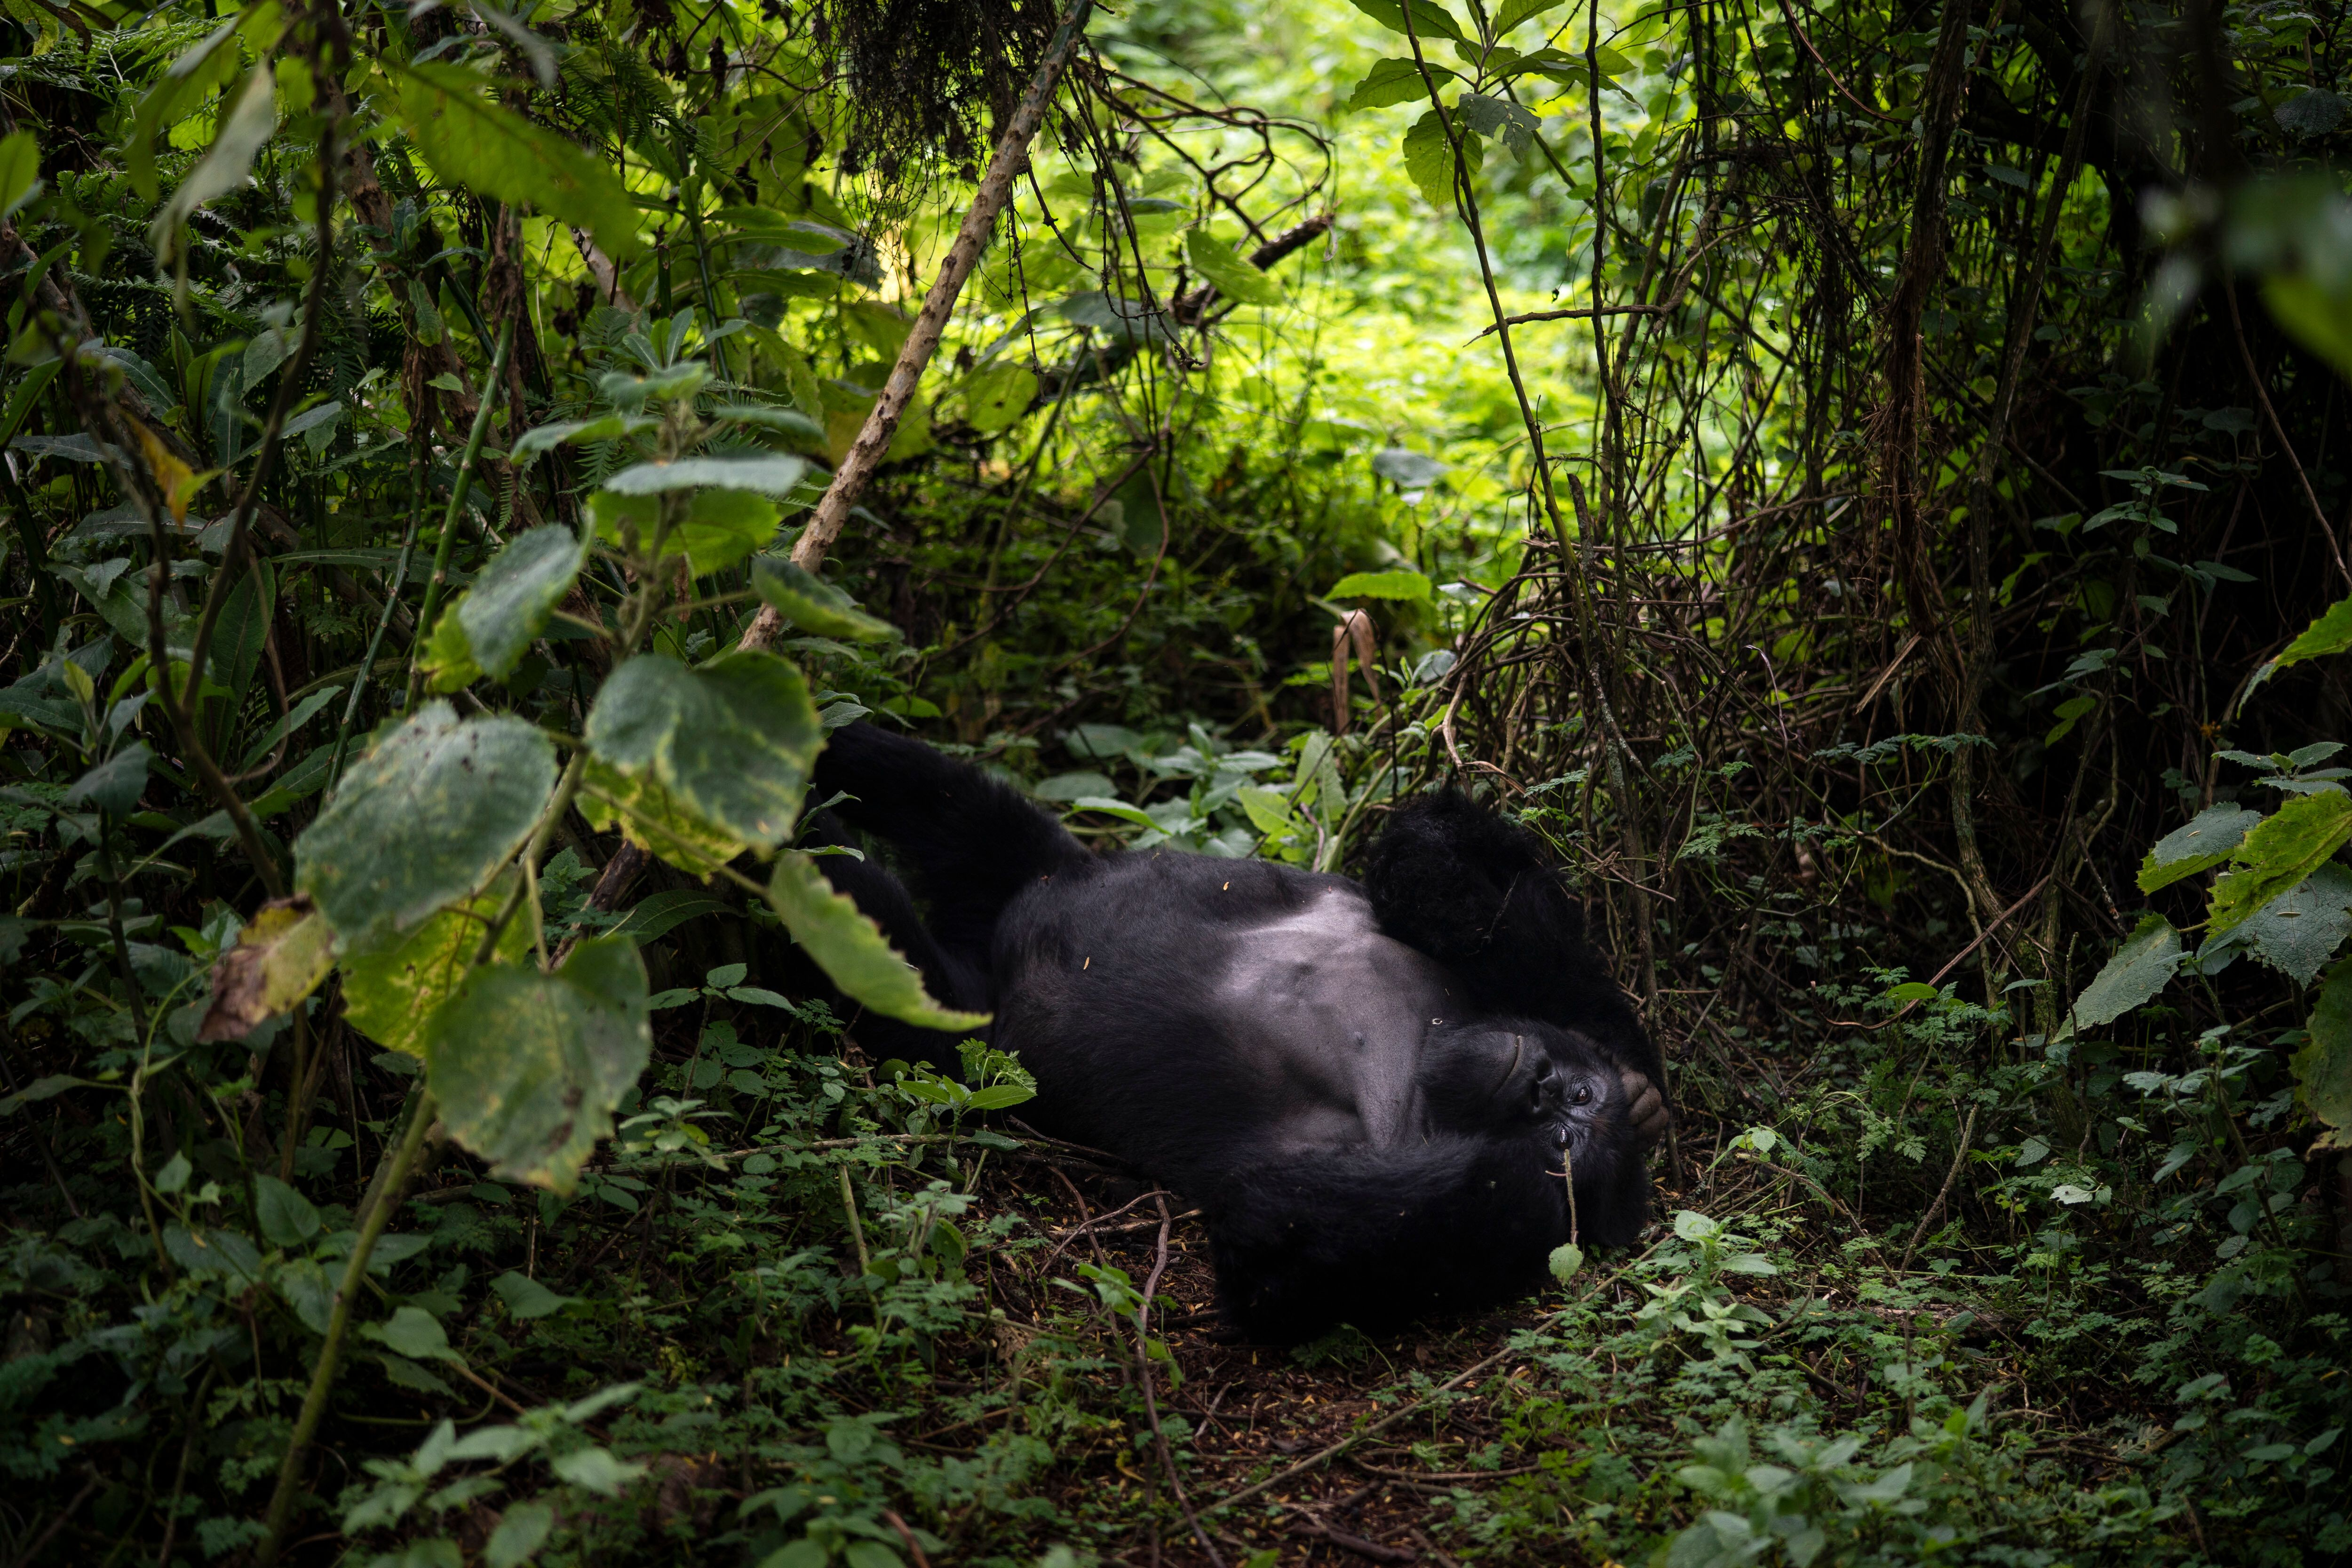 In this Sept. 2, 2019 photo, a silverback mountain gorilla named Segasira lies under a tree in the Volcanoes National Park, R